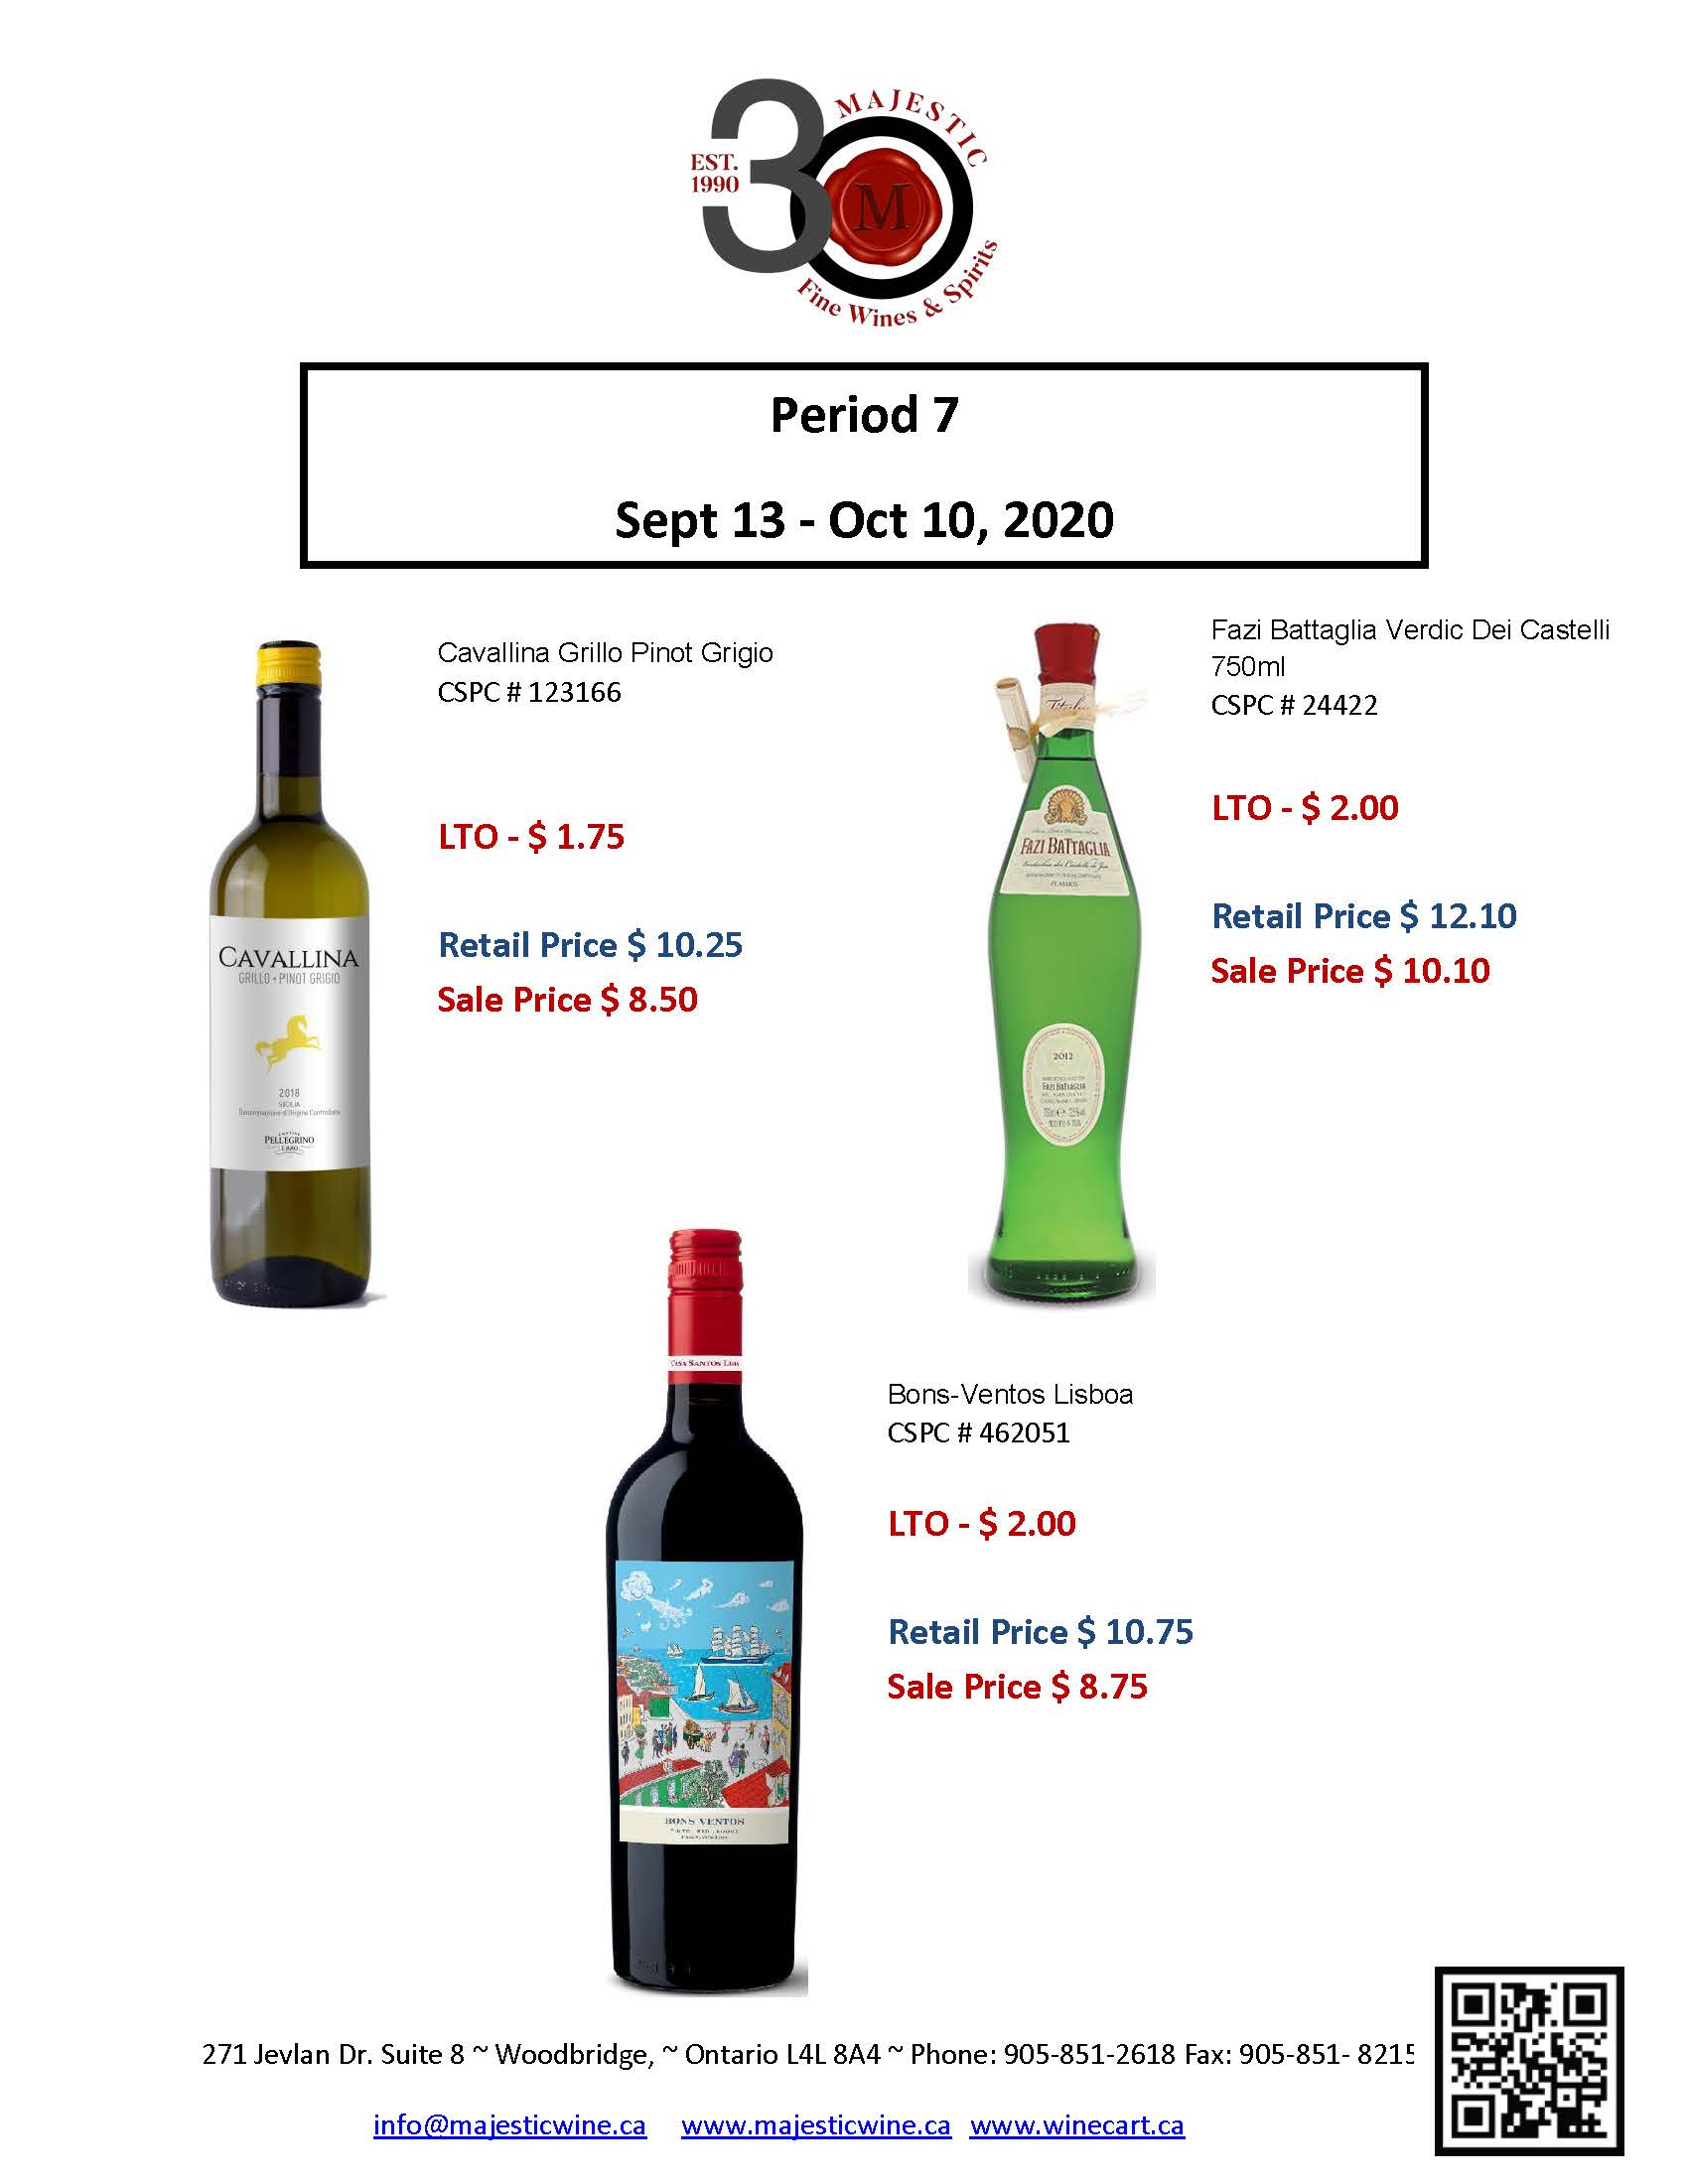 Period 7 - September 13th - October 10th Promotion